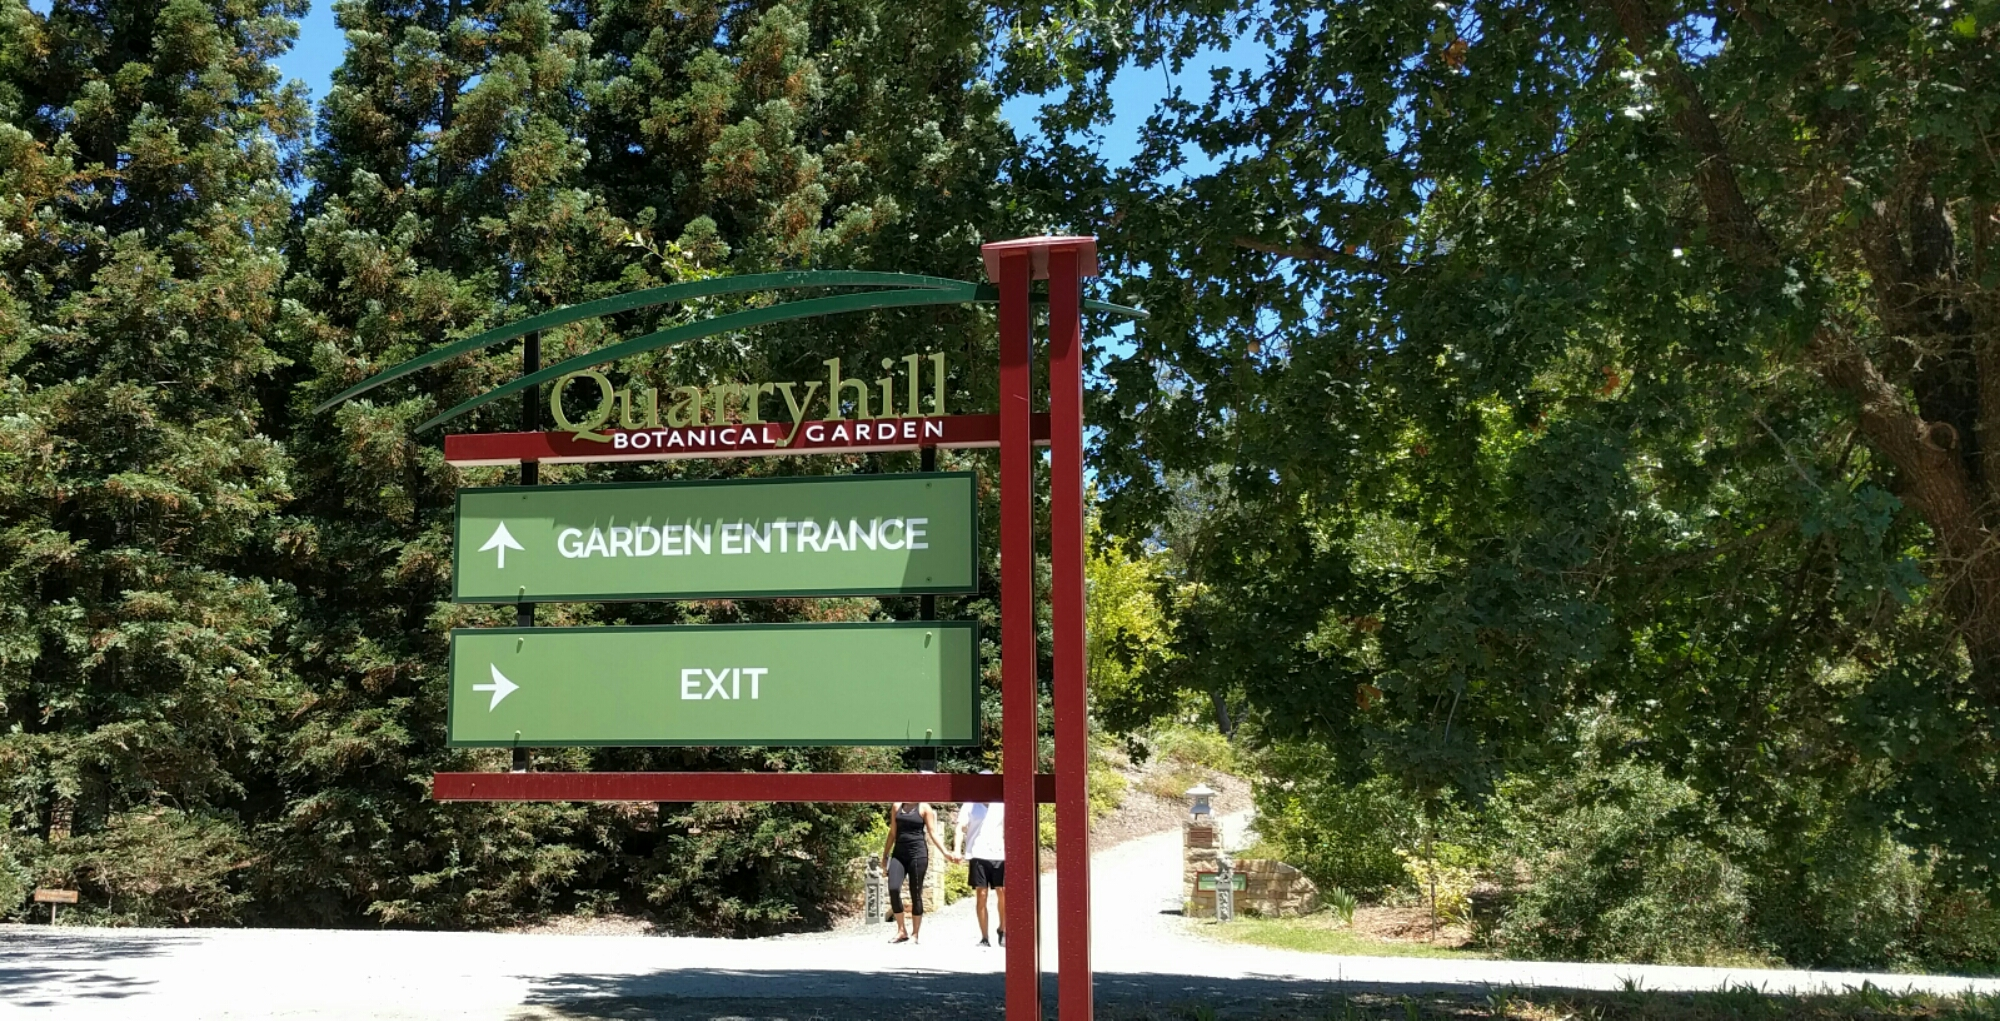 Lisa And I Drove North To Glen Ellen To Explore The Quarryhill Botanical  Garden.